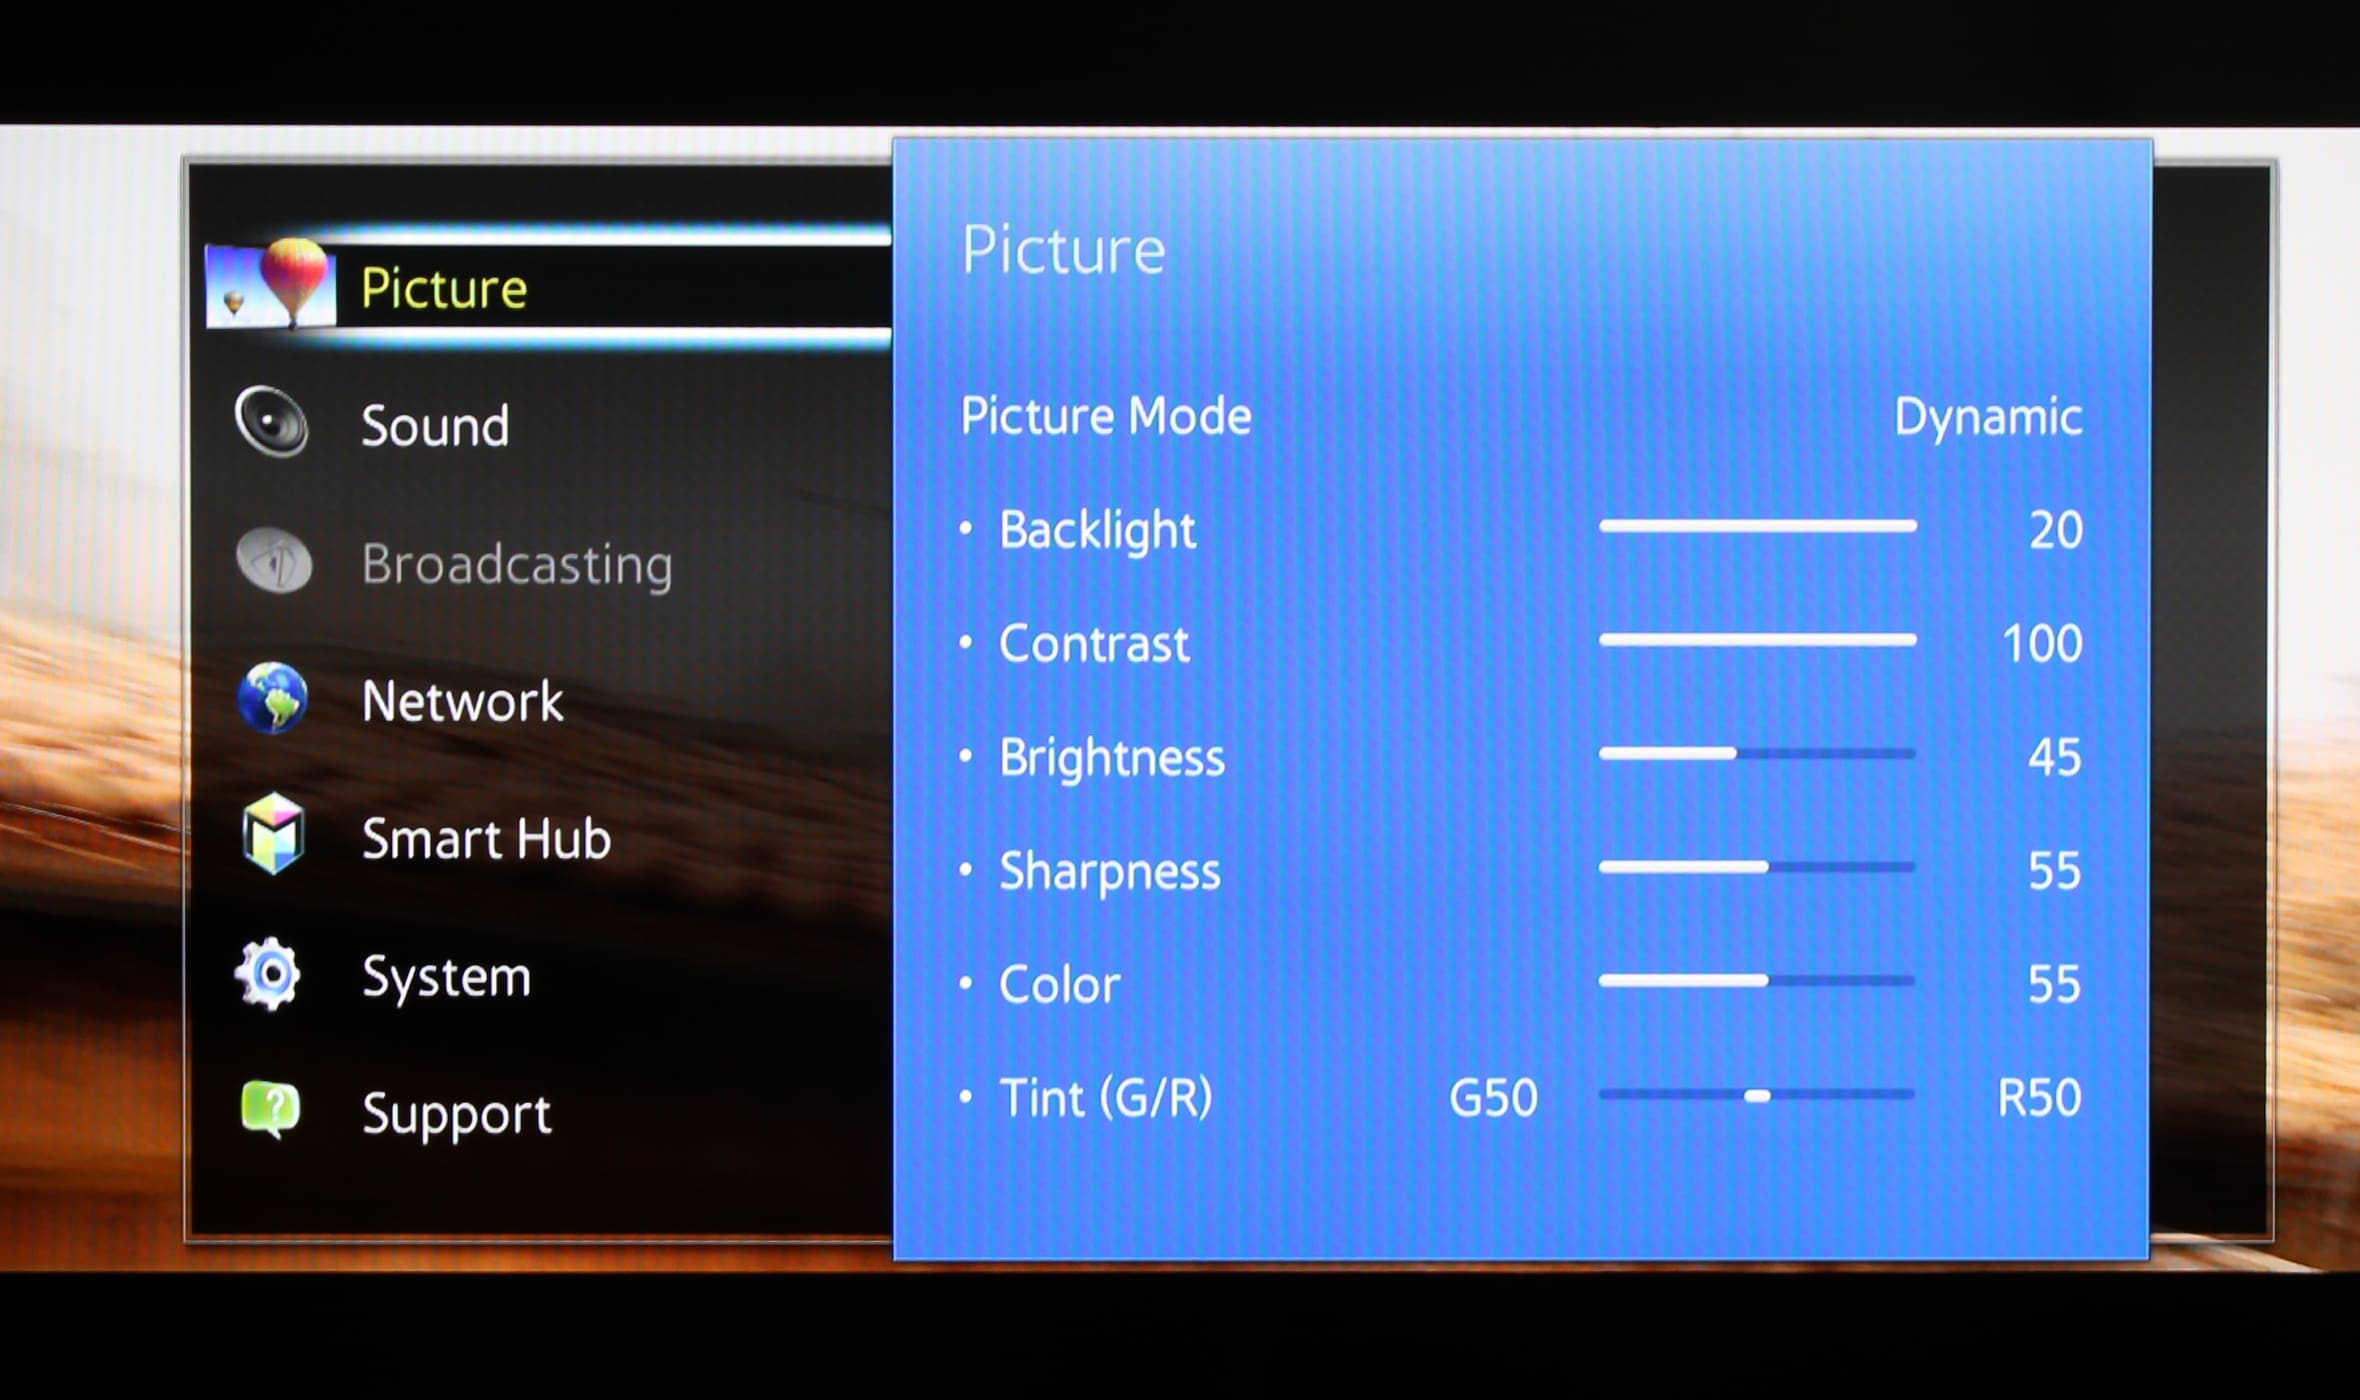 Samsung's picture menu is accessible and easy to use.